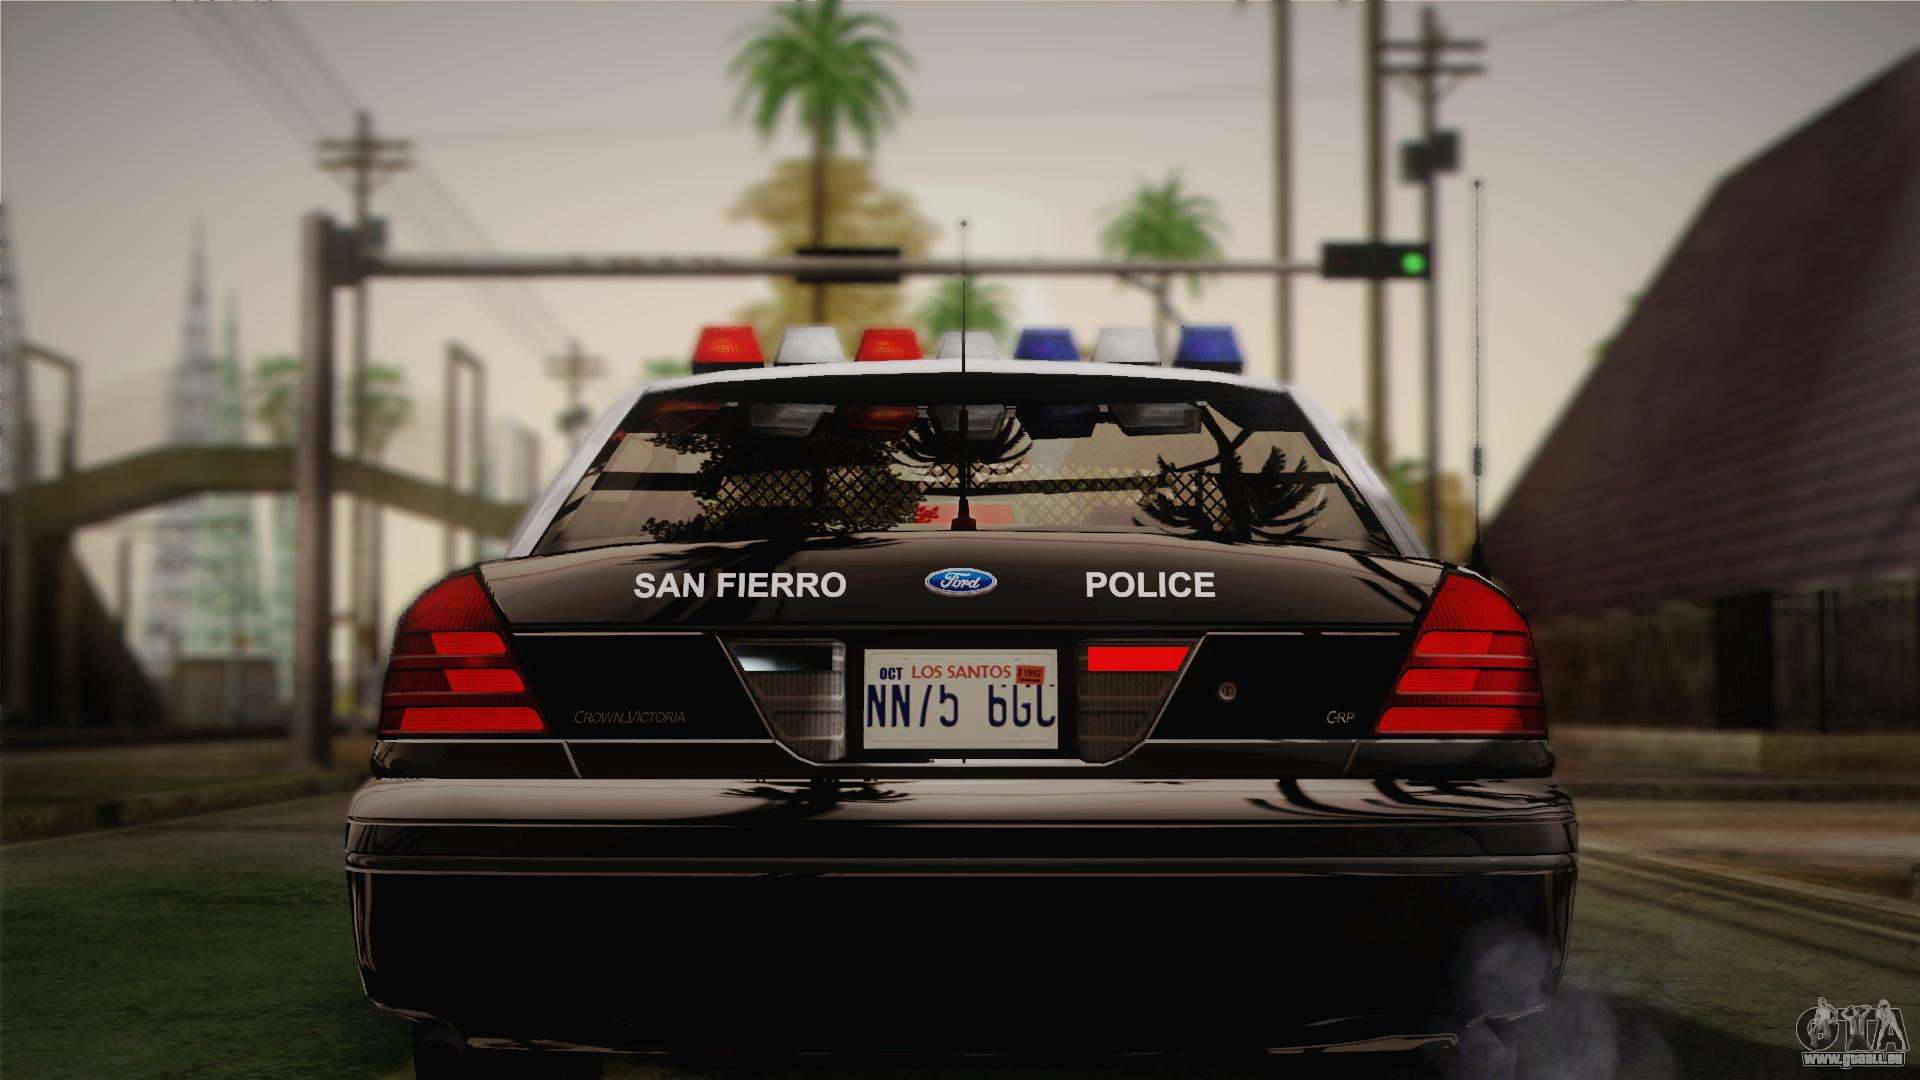 Gta 5 Cars Wallpaper Download Ford Crown Victoria 2005 Police F 252 R Gta San Andreas